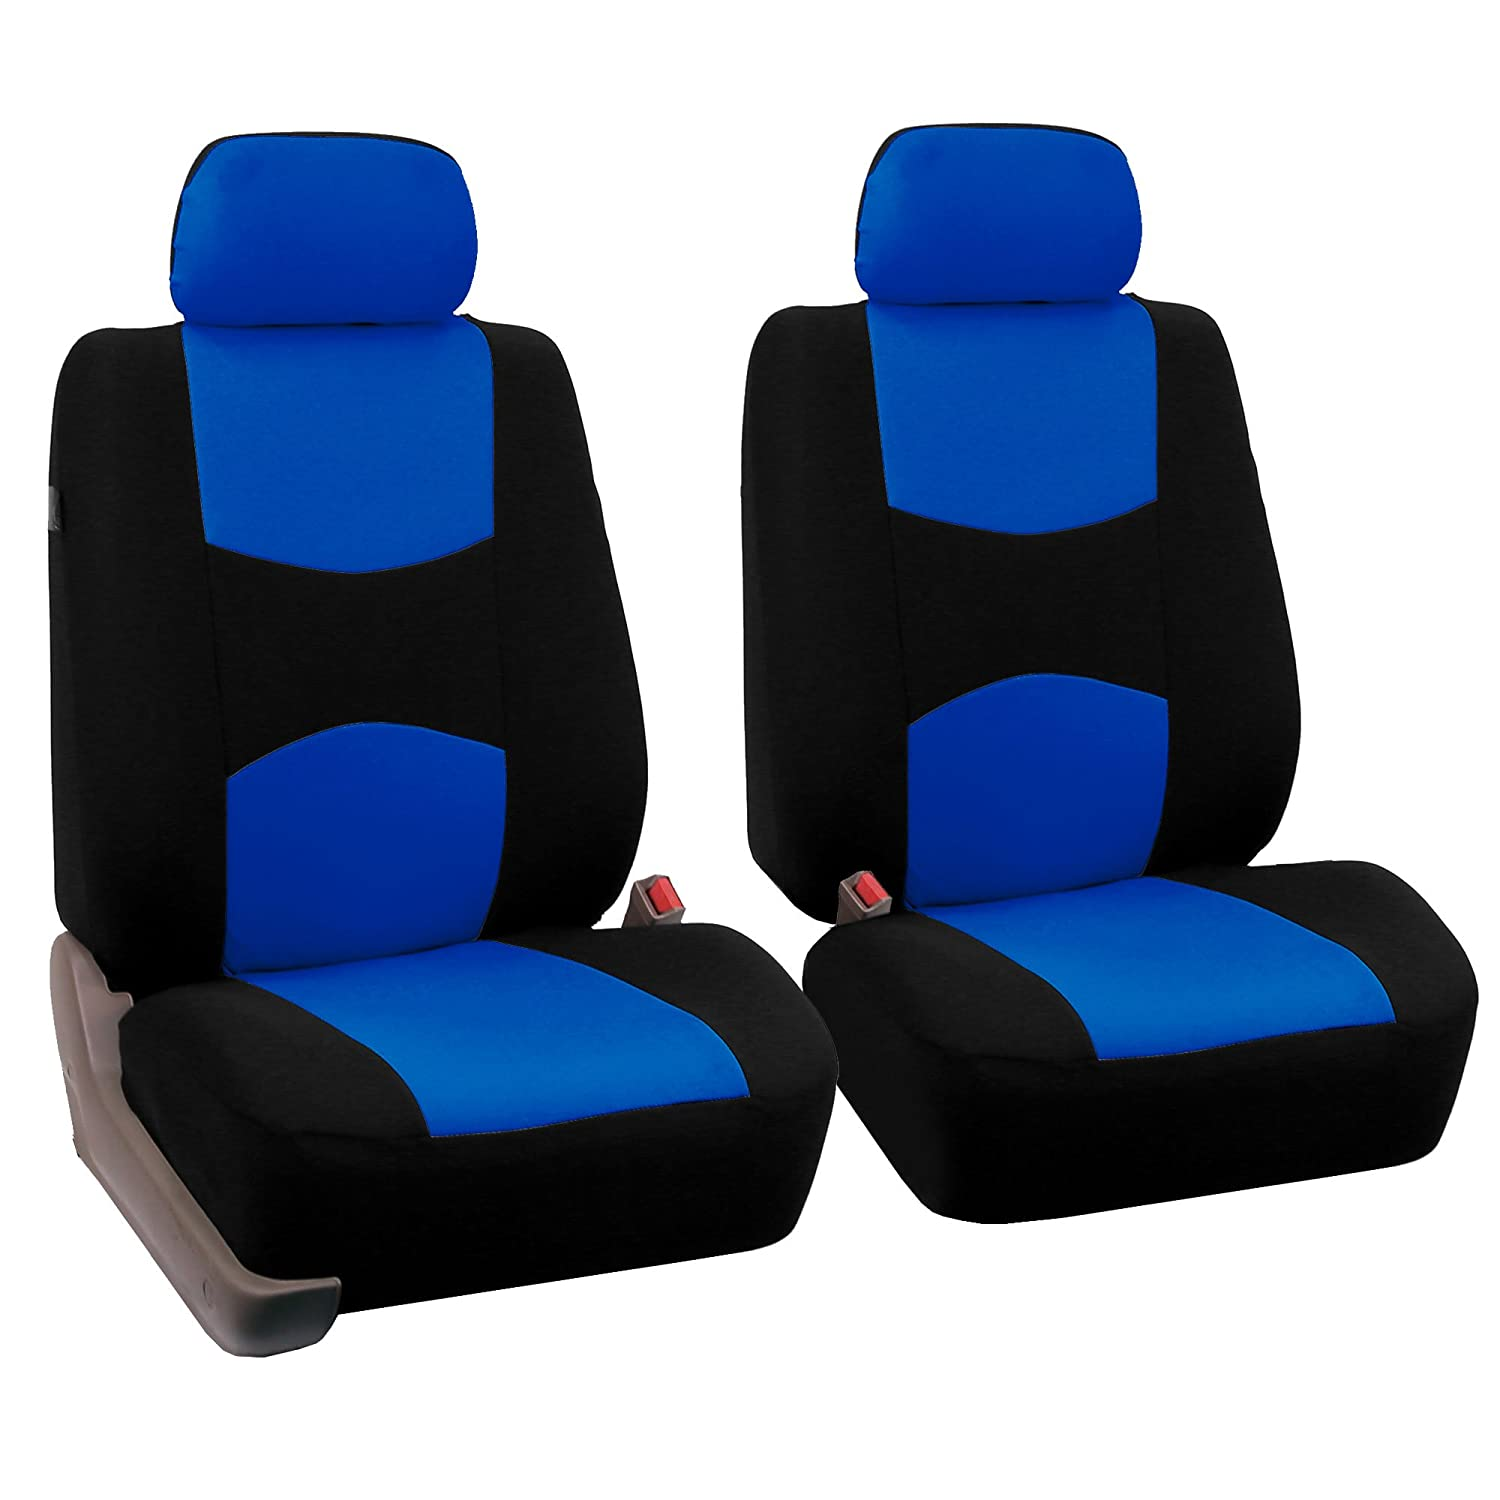 Fh group universal fit full set flat cloth fabric car seat cover blue black fh fb050114 fit most car truck suv or van accessories amazon canada